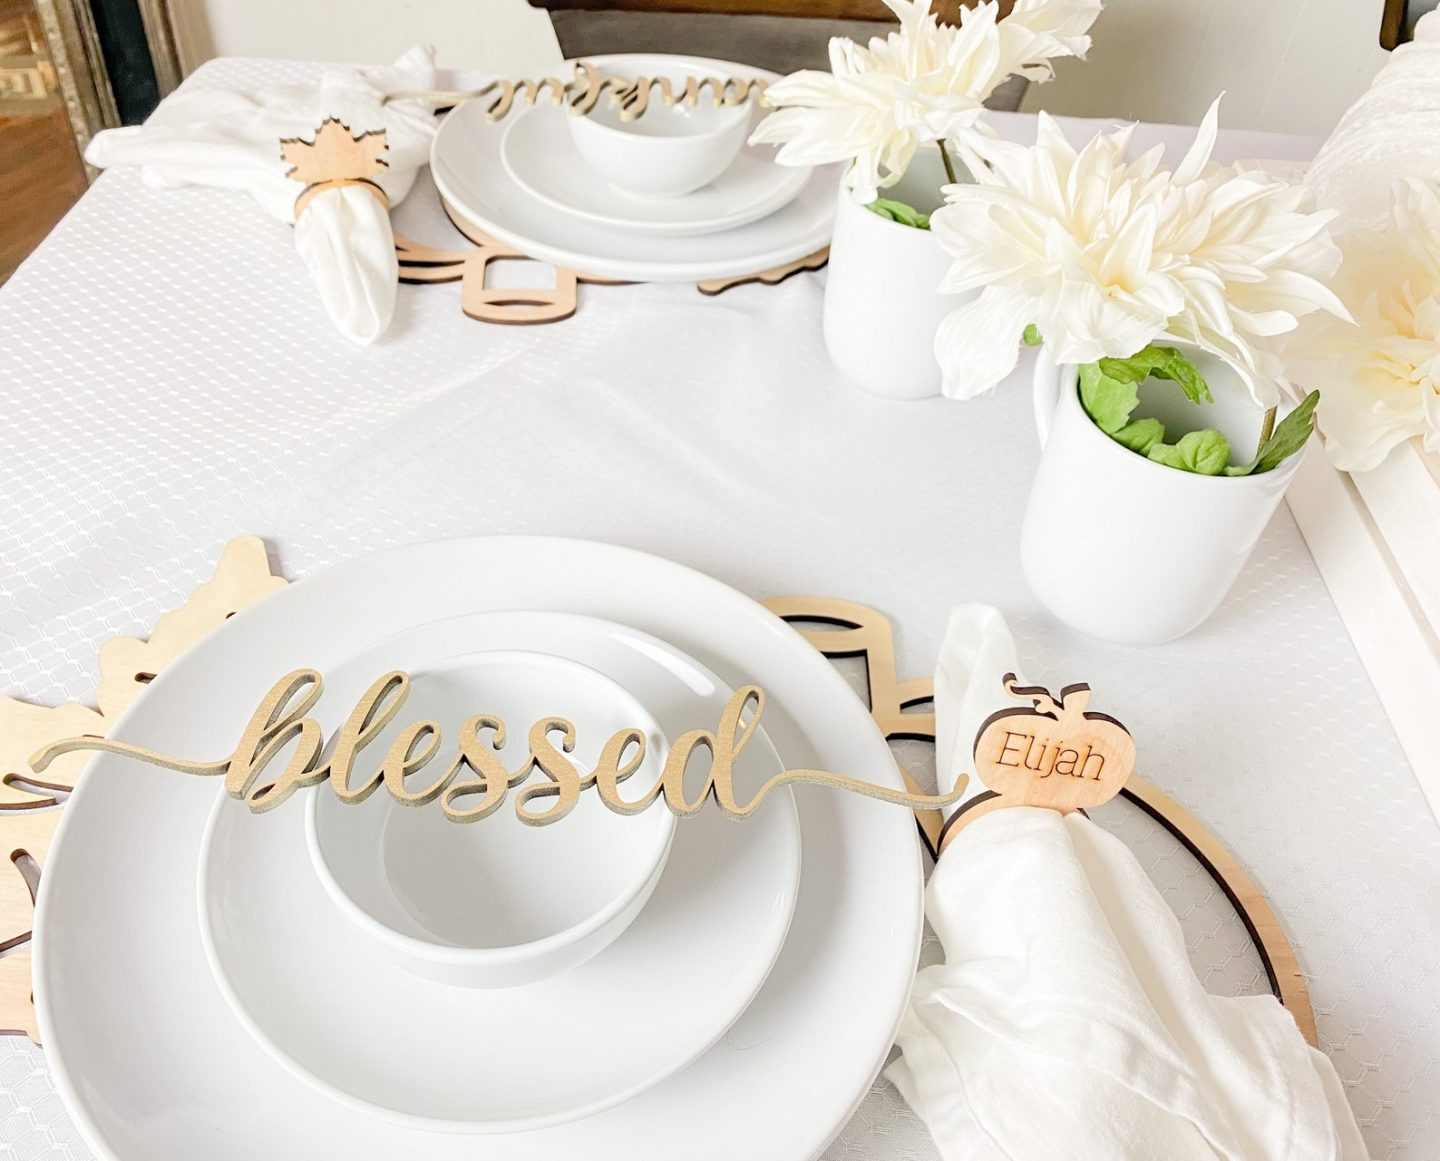 Blessed Thanksgiving table decor